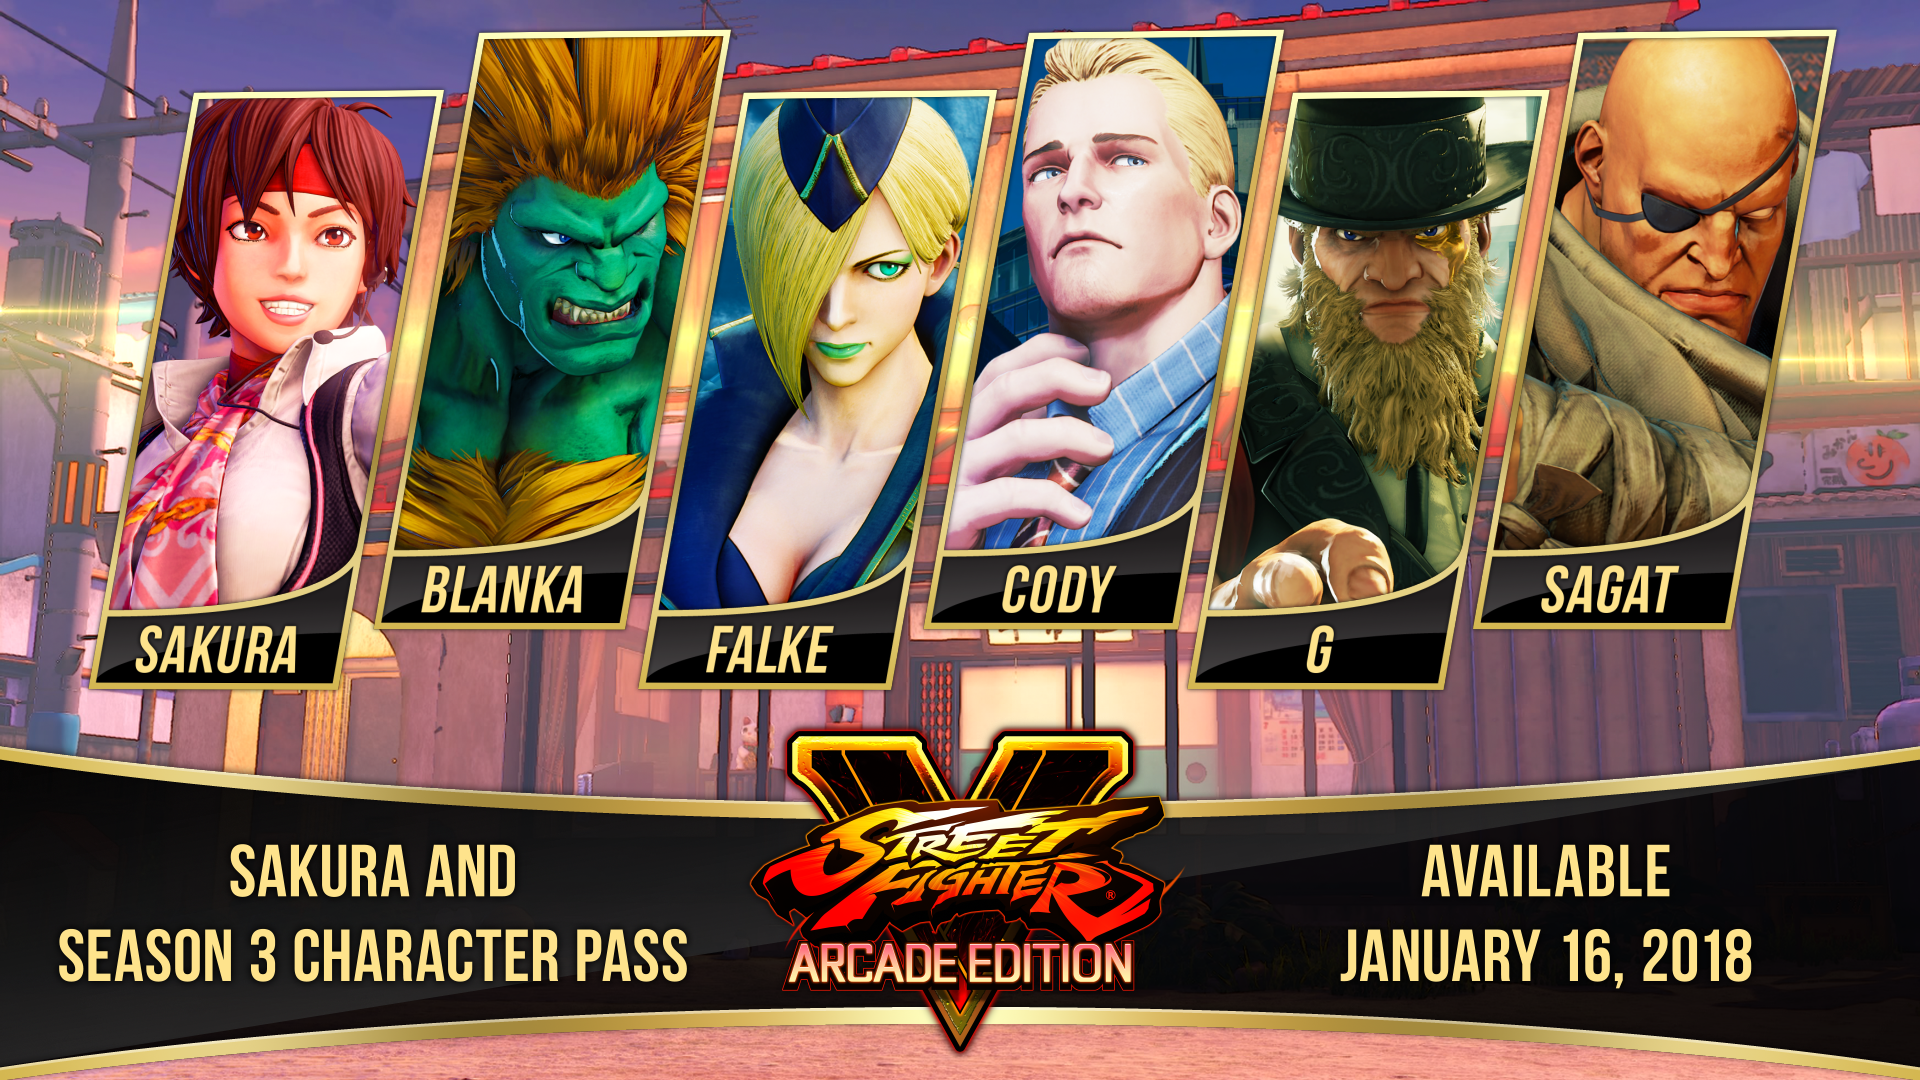 Street Fighter V: Arcade Edition - Season 3